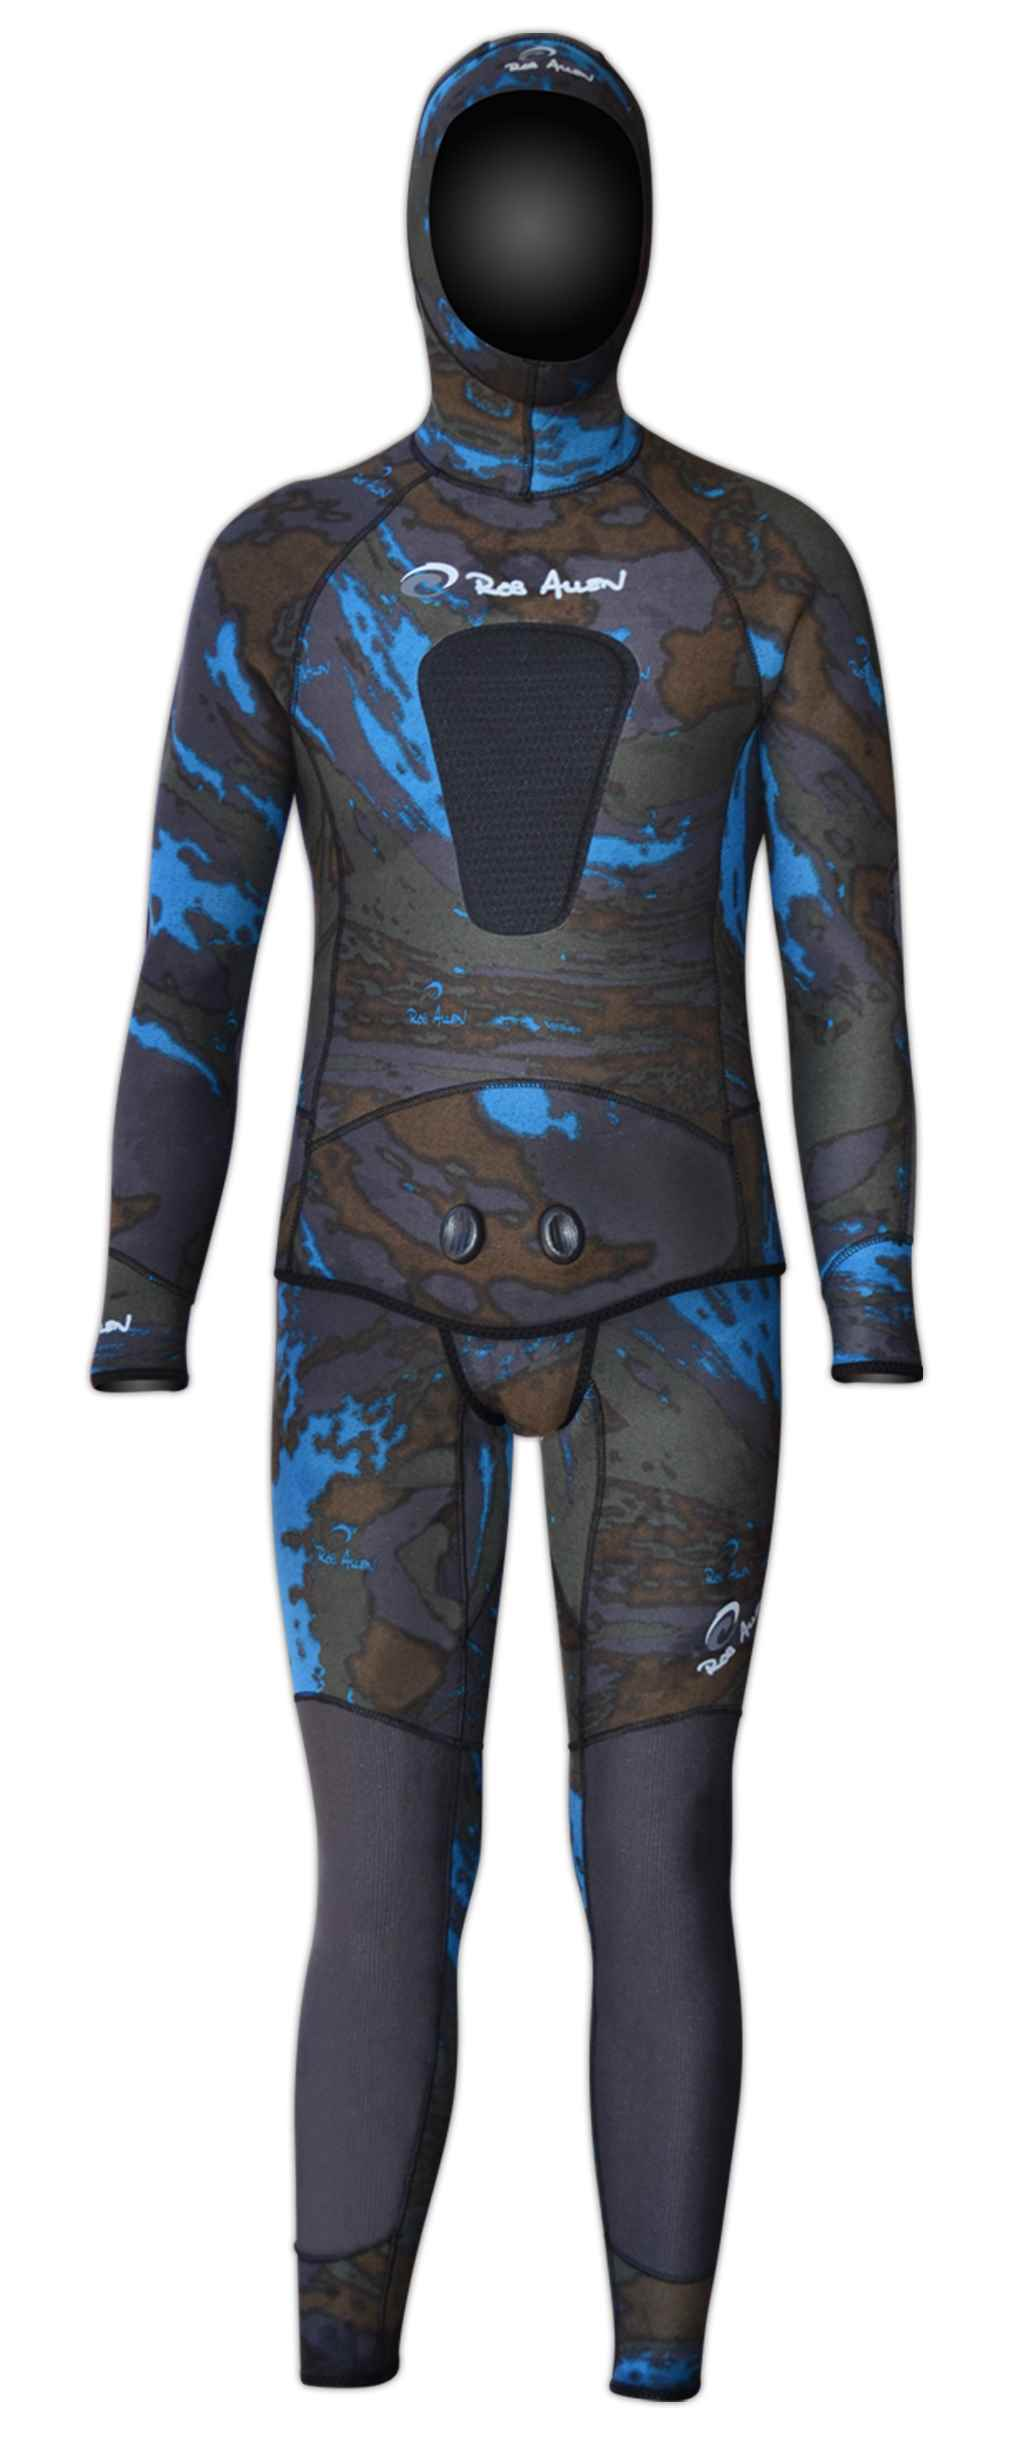 Spearfishing Uk Rob Allen Wetsuit Dual Camo